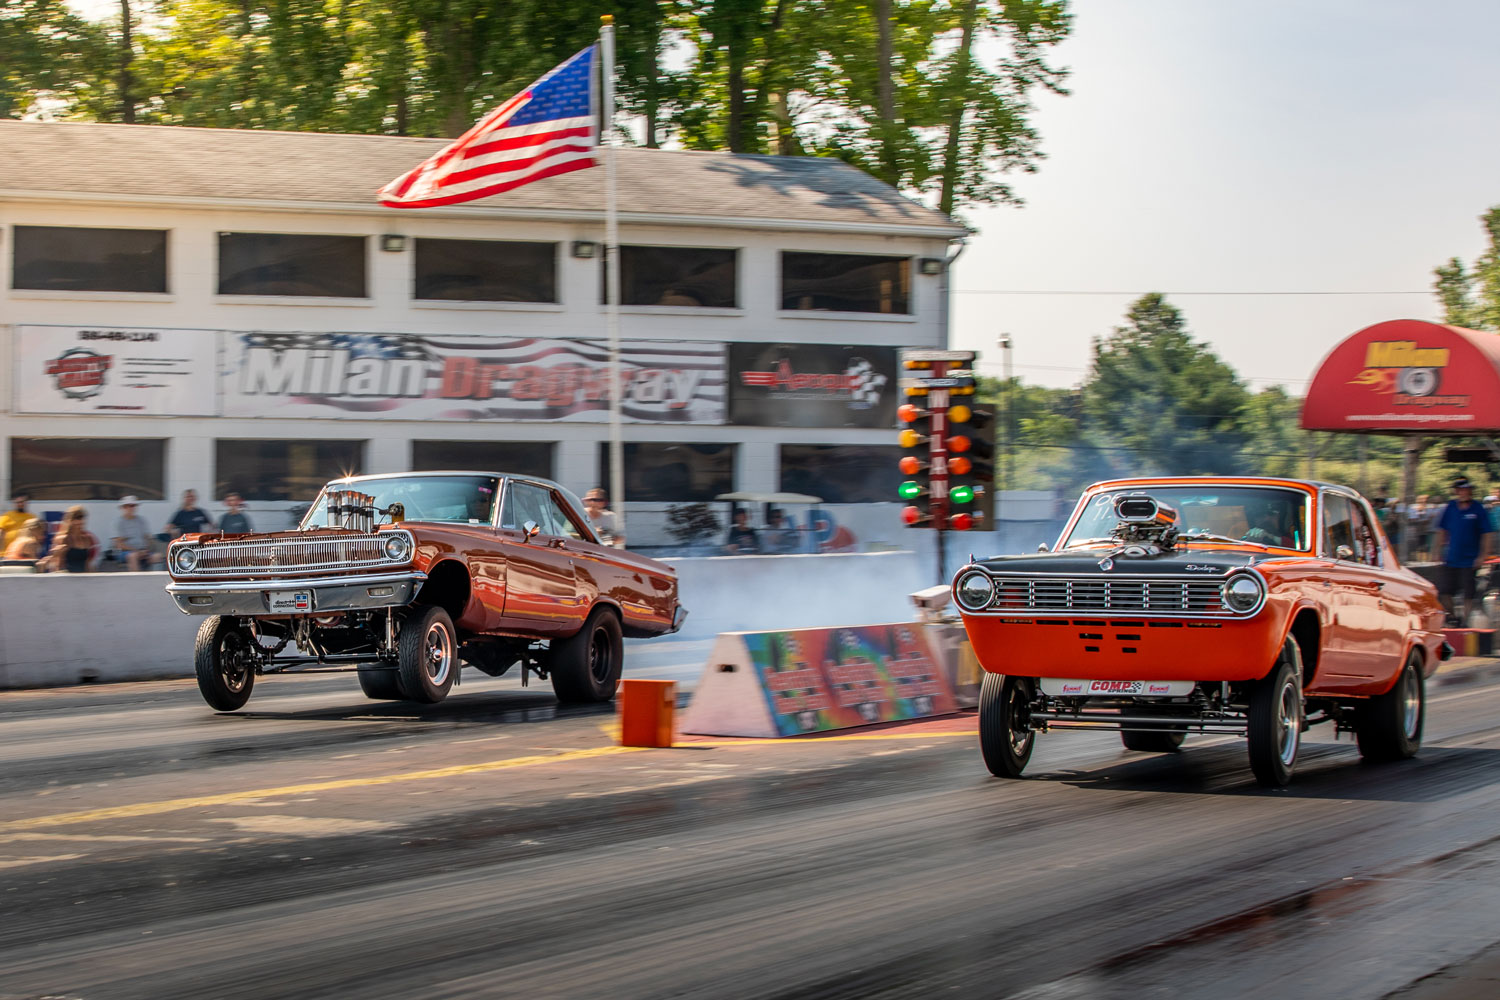 dueling altered drag cars